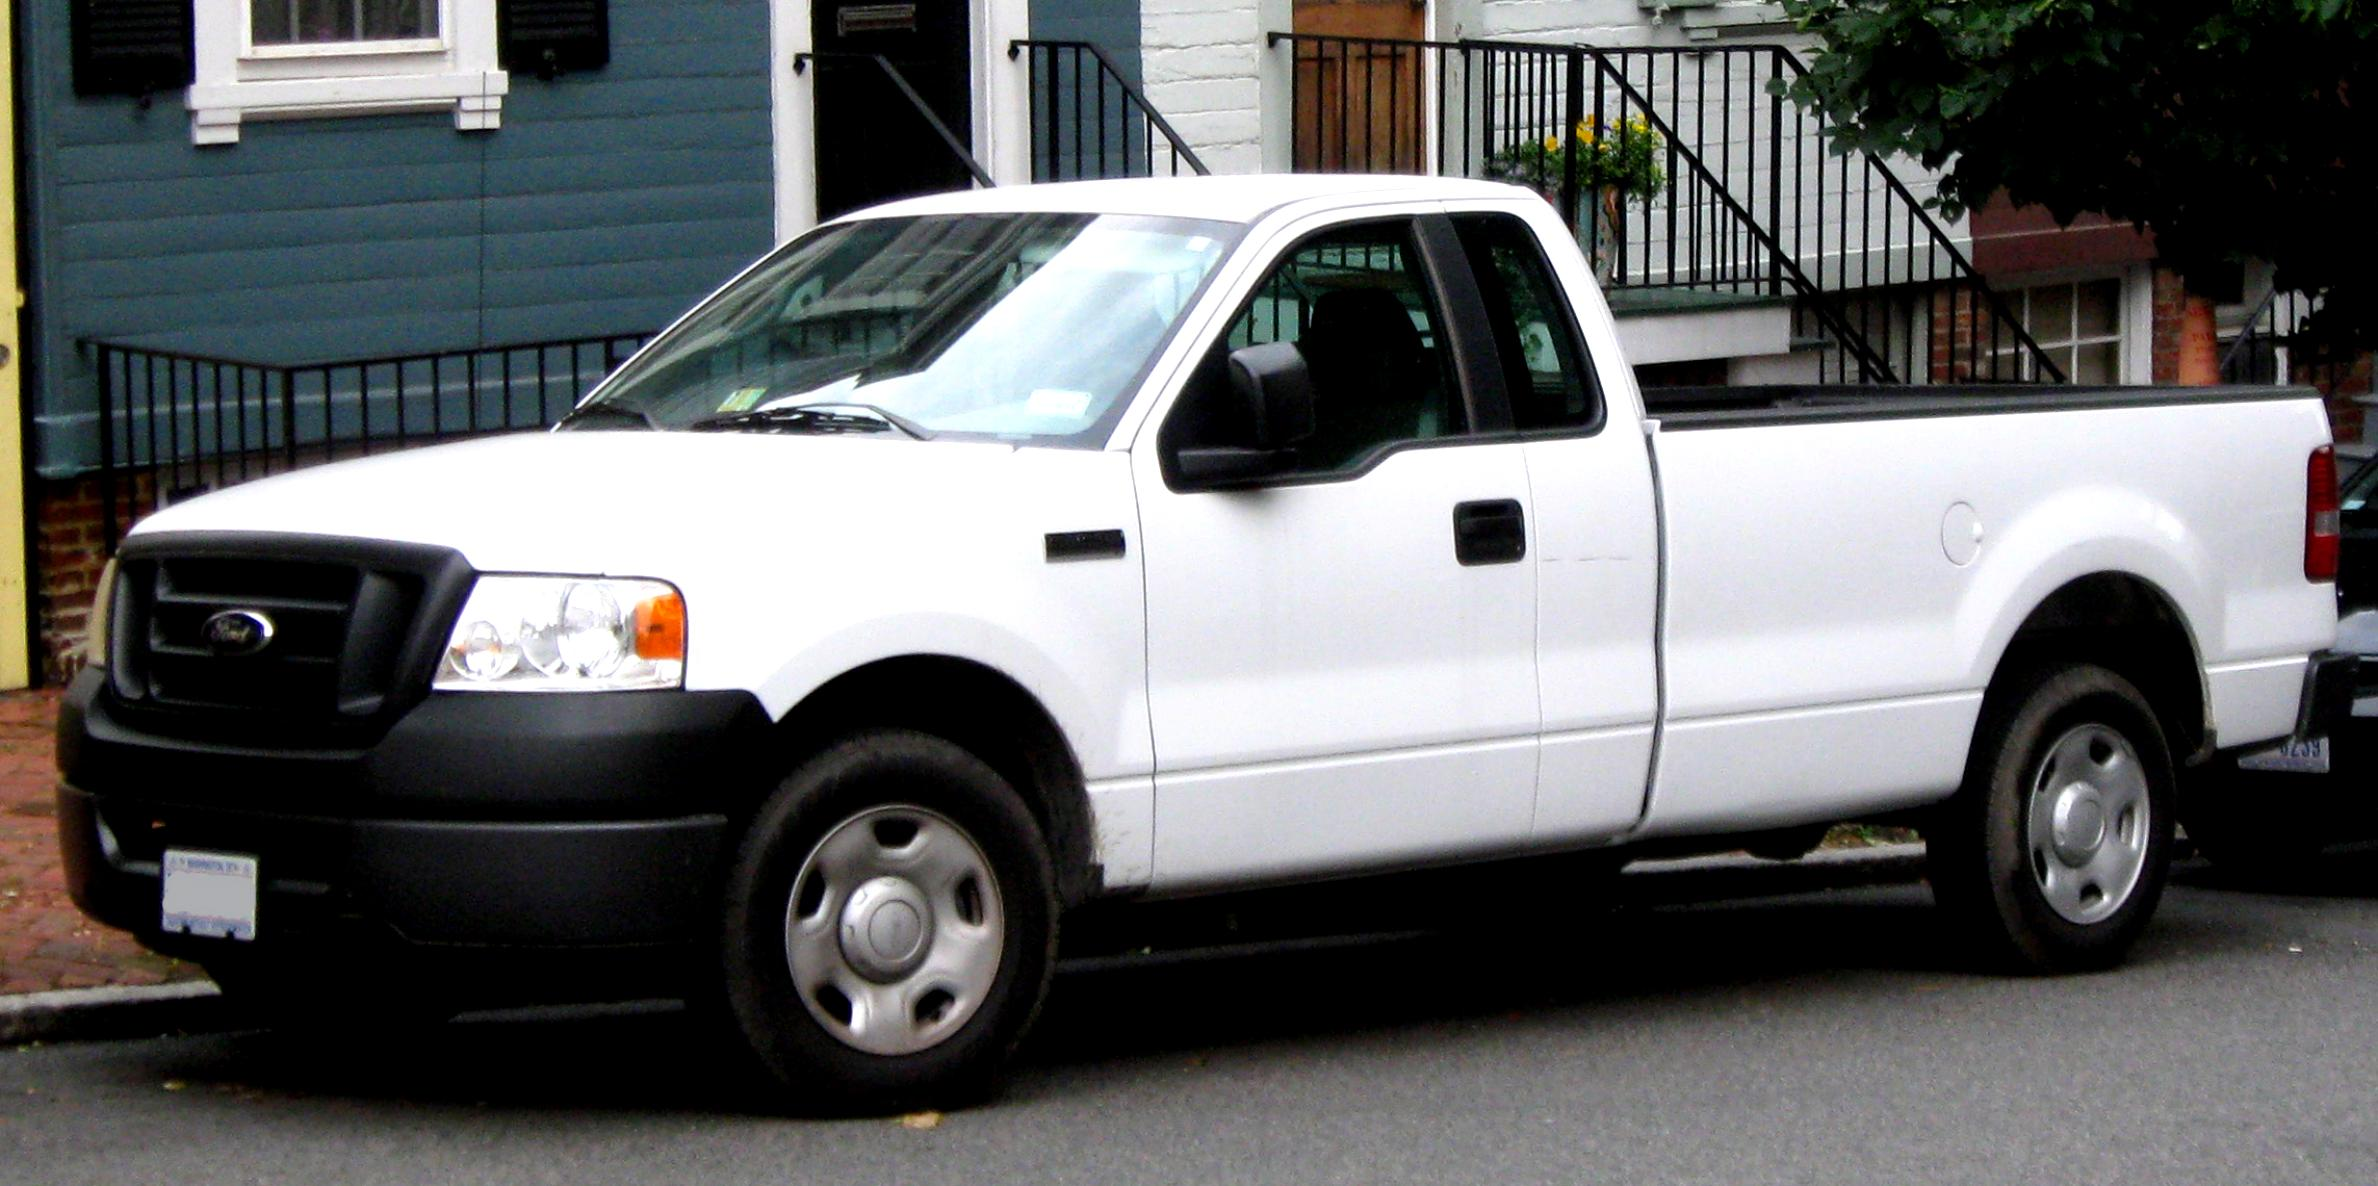 Ford F-150 Regular Cab 2004 #1